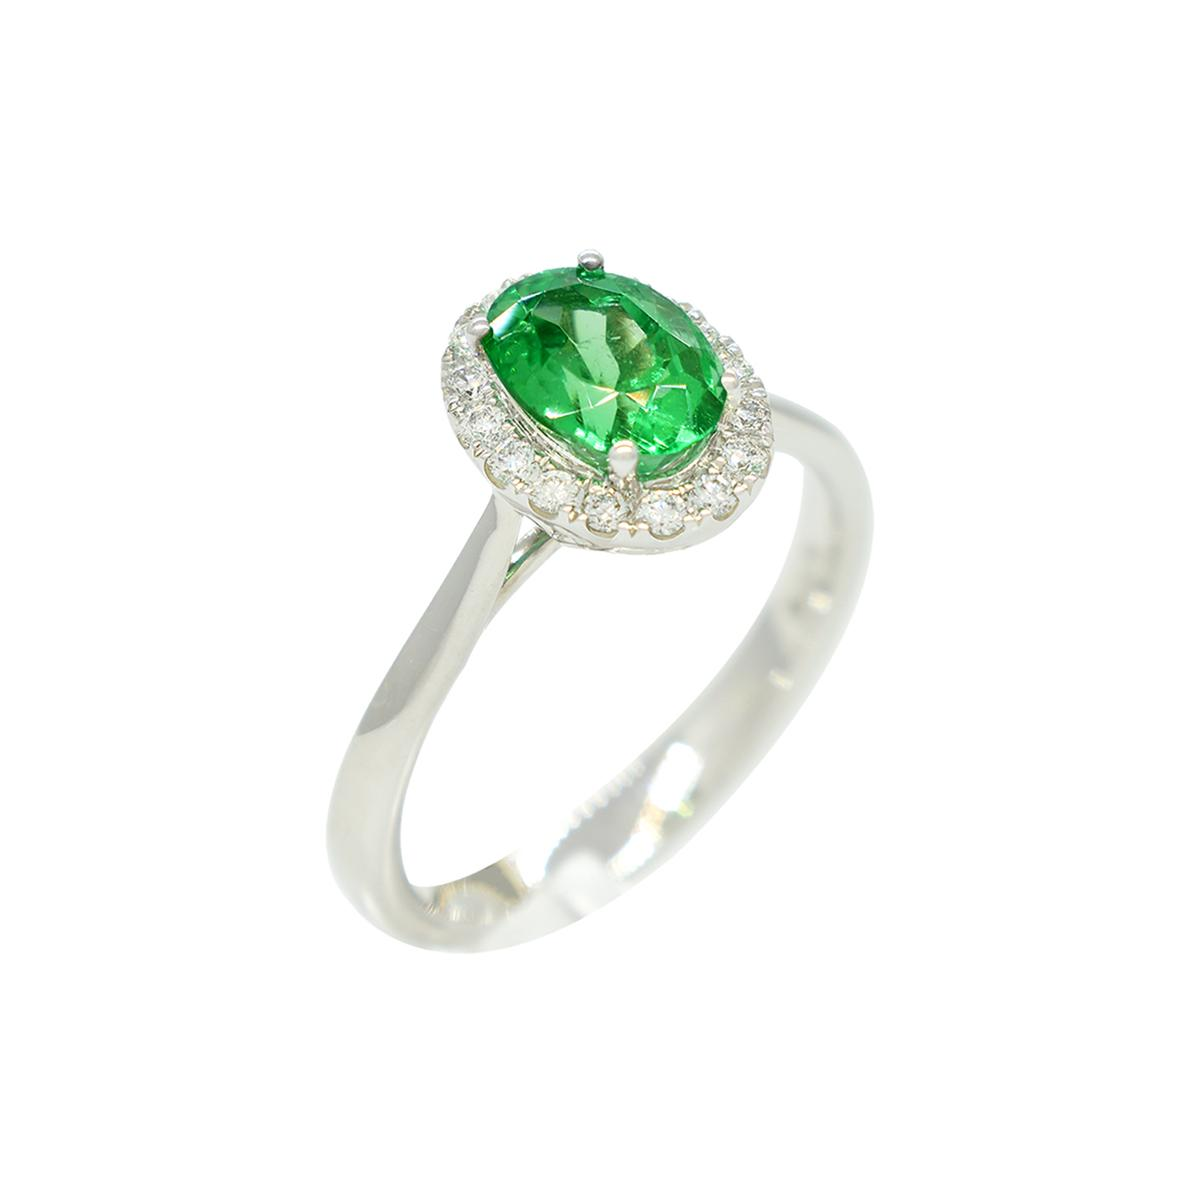 18k-white-gold-cluster-emerald-ring-in-diamond-halo-with-stunning-oval-shape-emerald